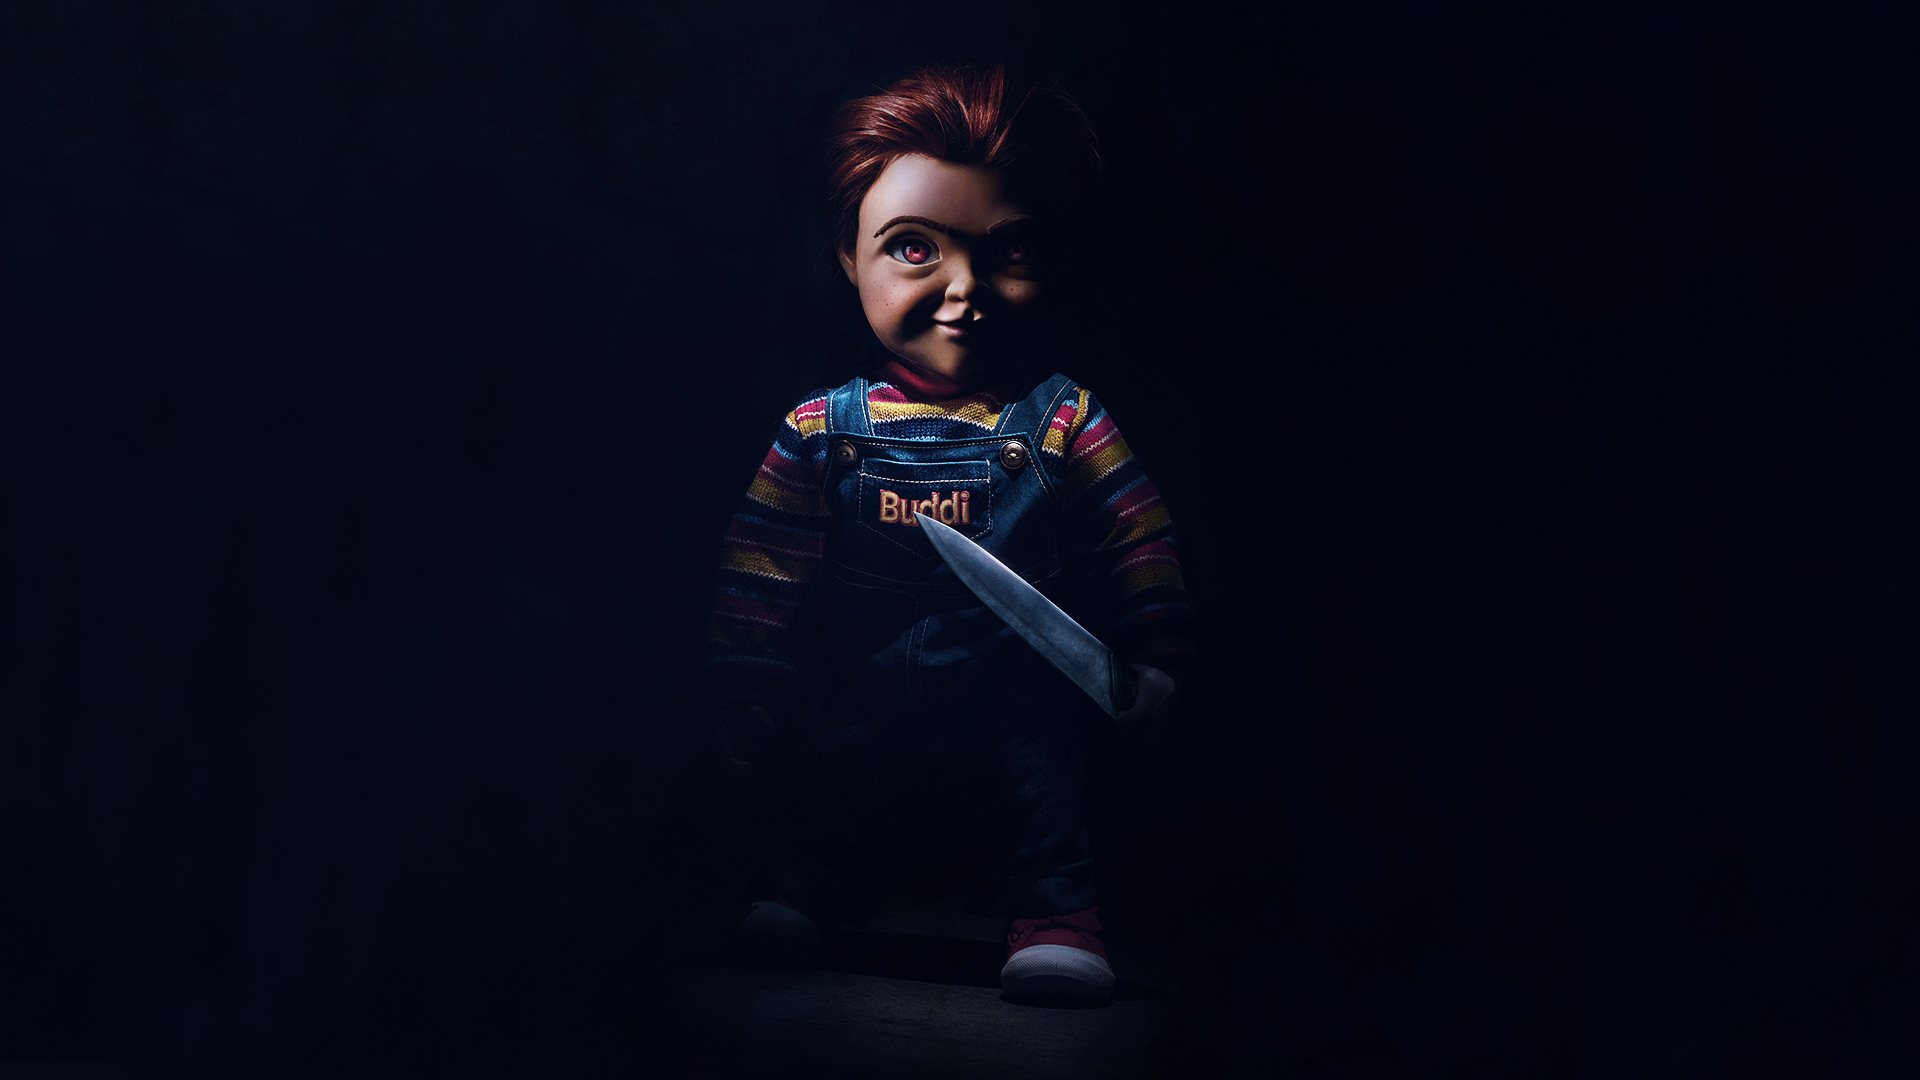 Childs Play 2019 Movie Wallpaper, HD Movies 4K Wallpapers ...